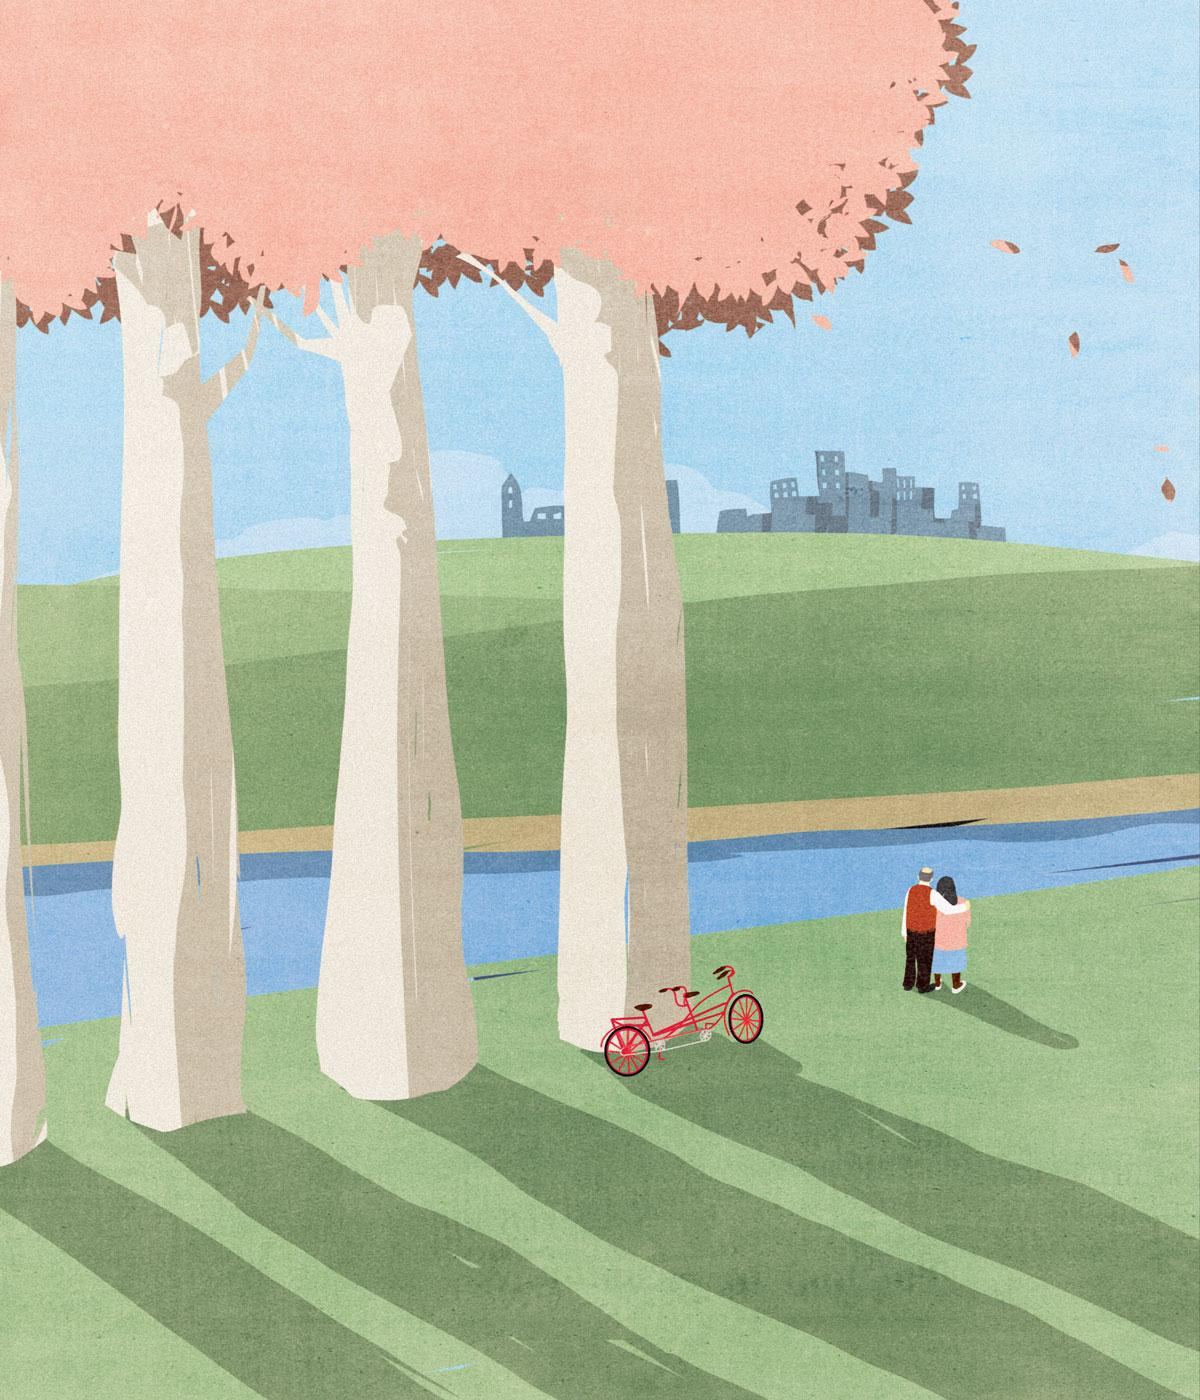 An illustration depicting a couple hugging by a bike